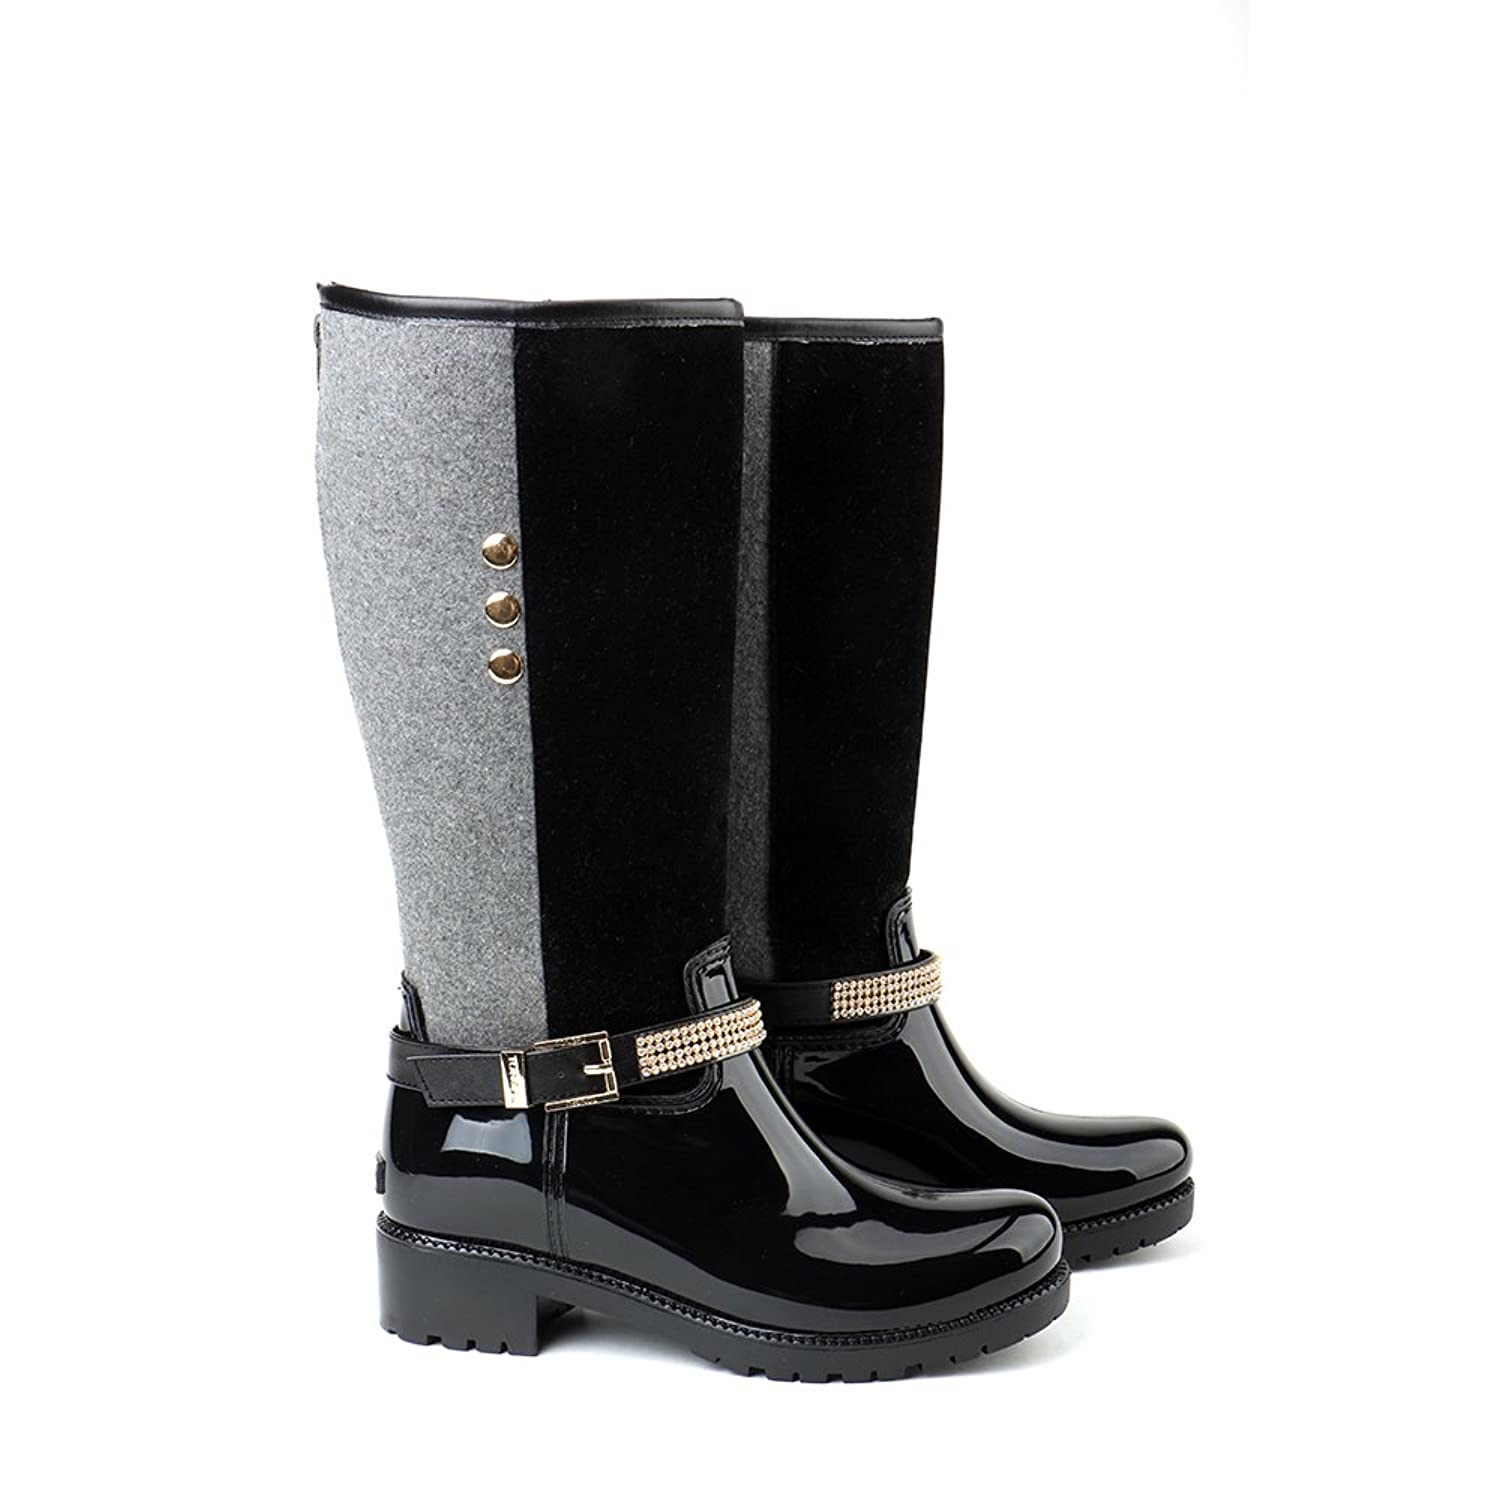 Tongpu Women Buckled Decoration Knee High Rain Boots